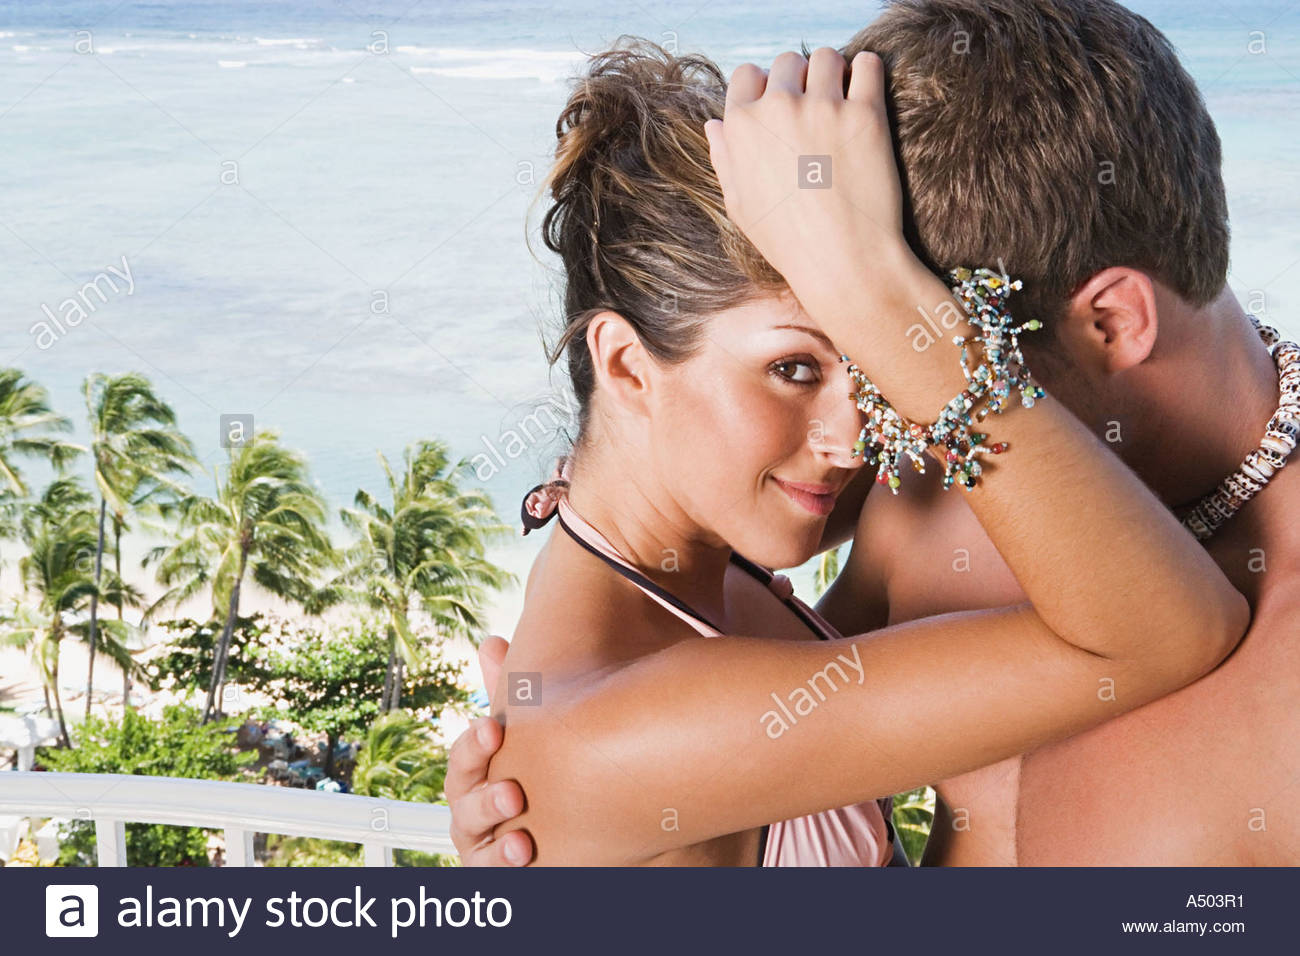 Couple embracing by ocean - Stock Image